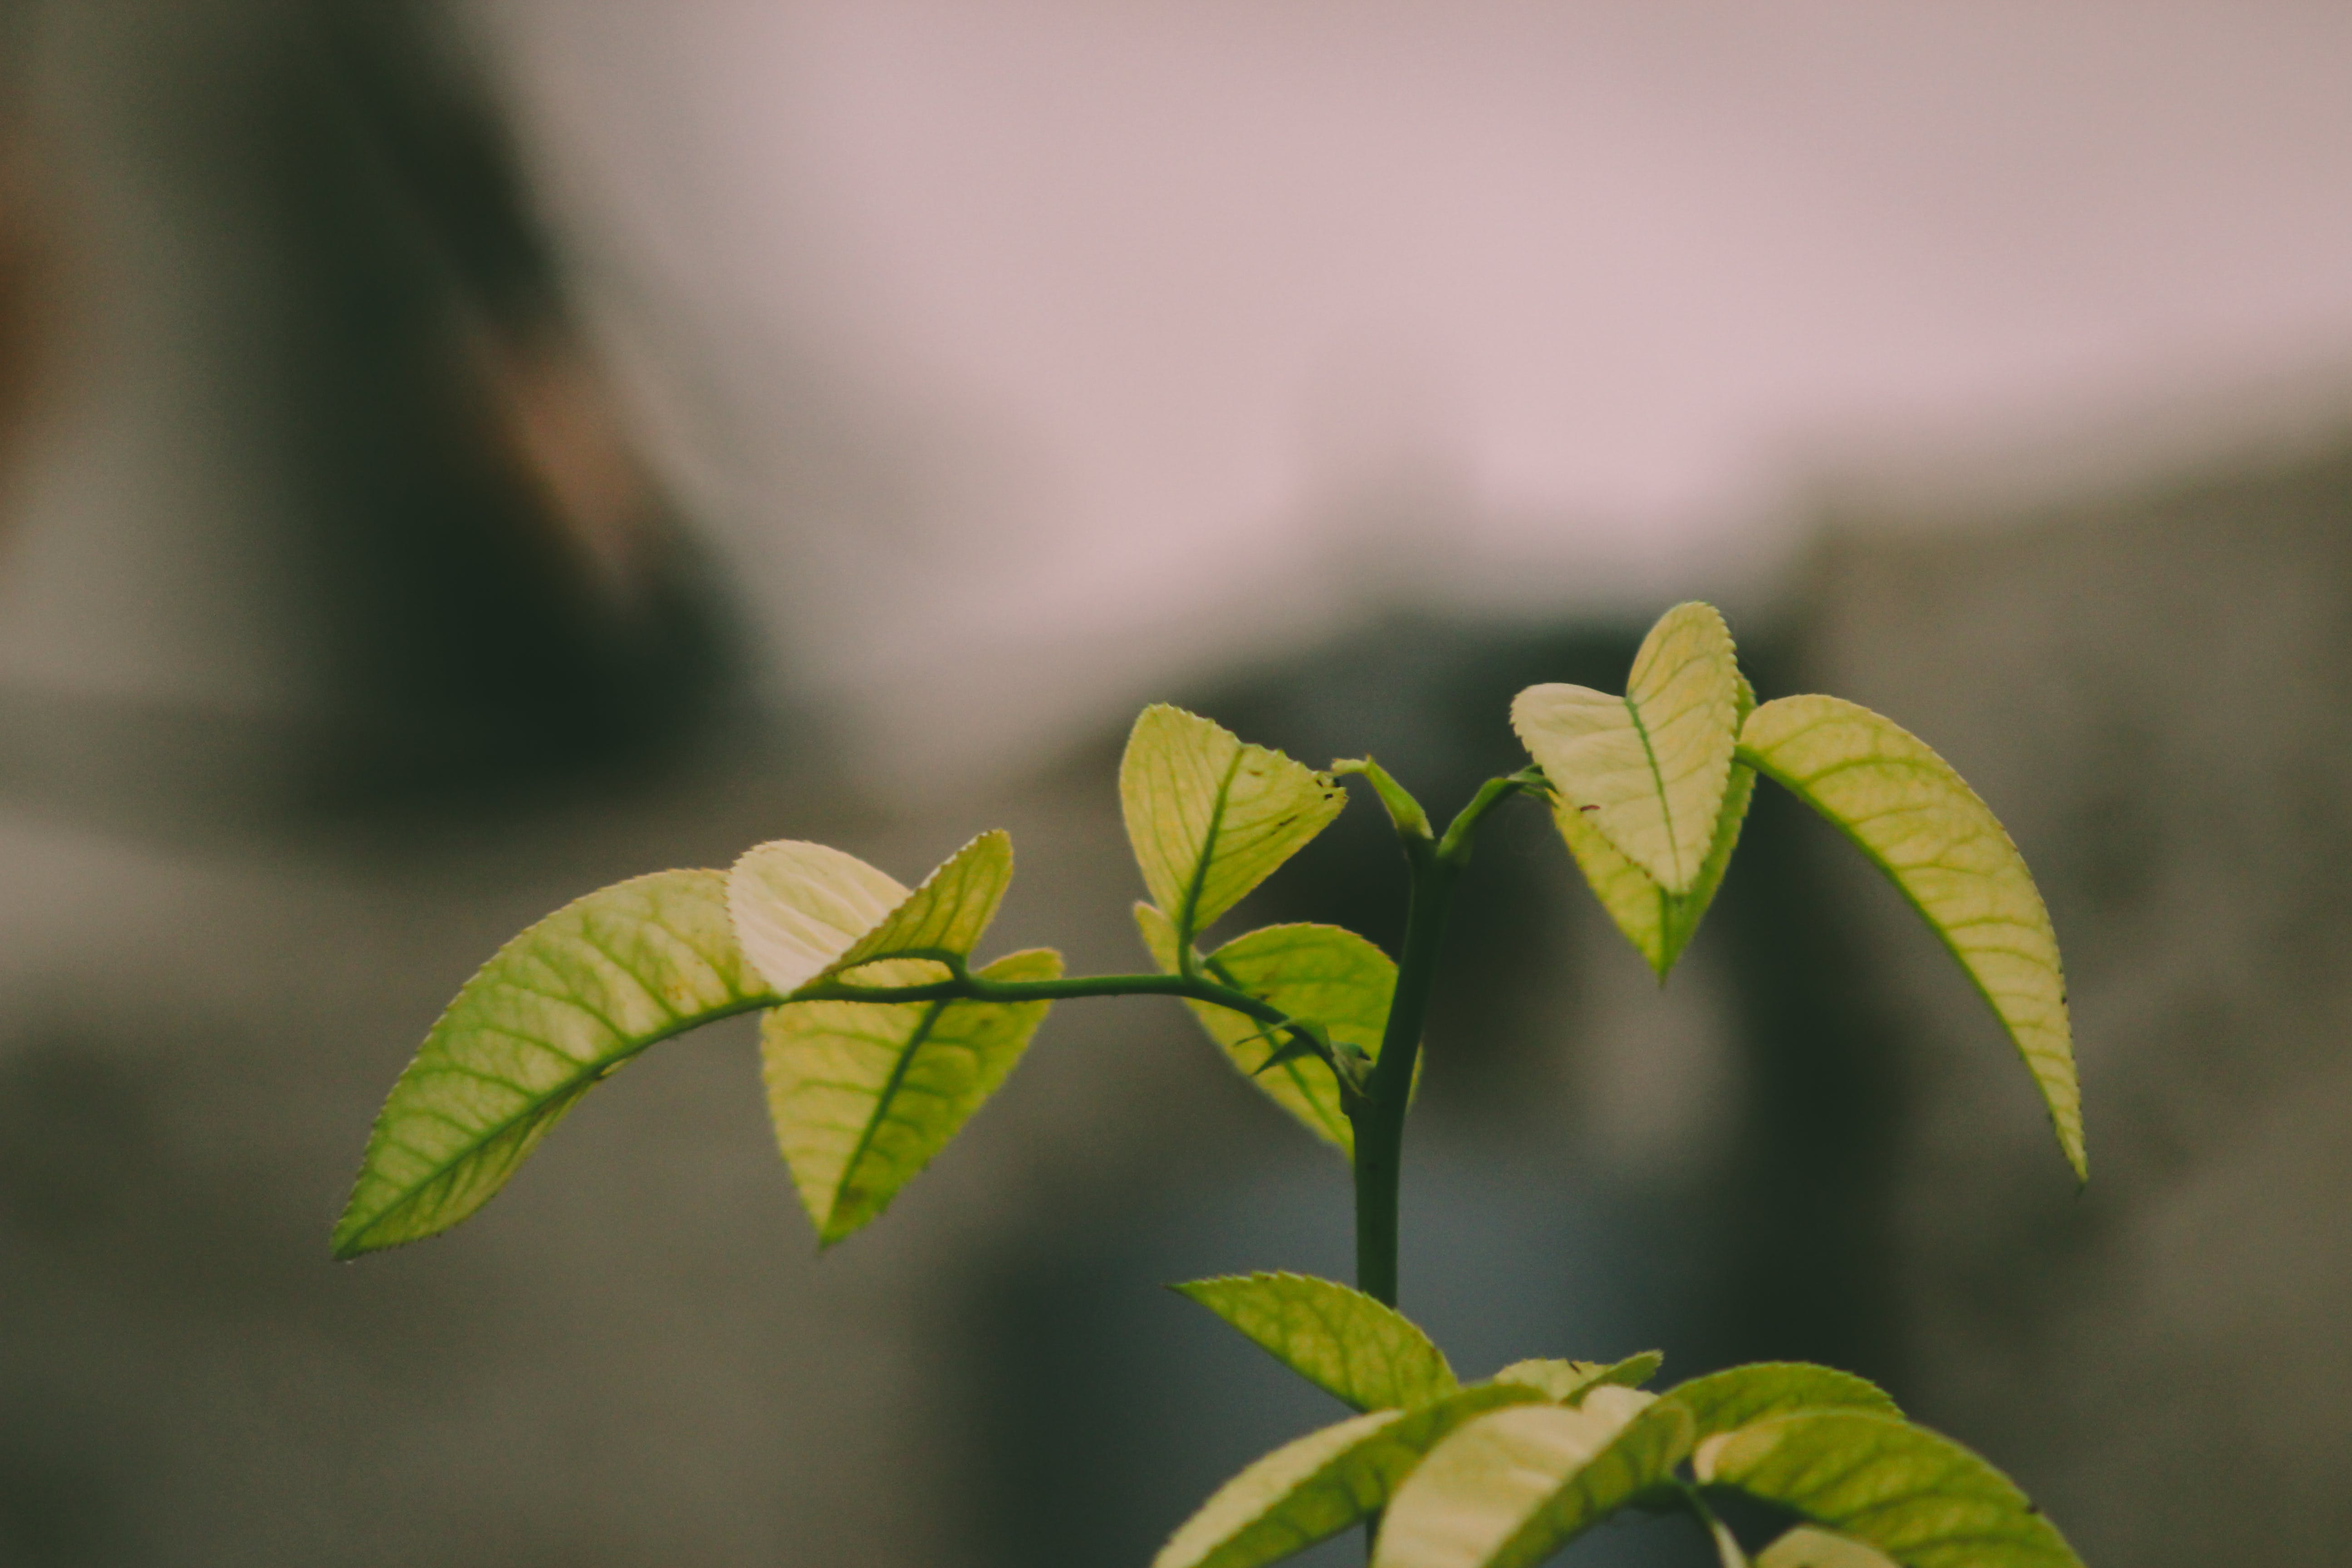 Selective Photo Of Green Leafed Plant